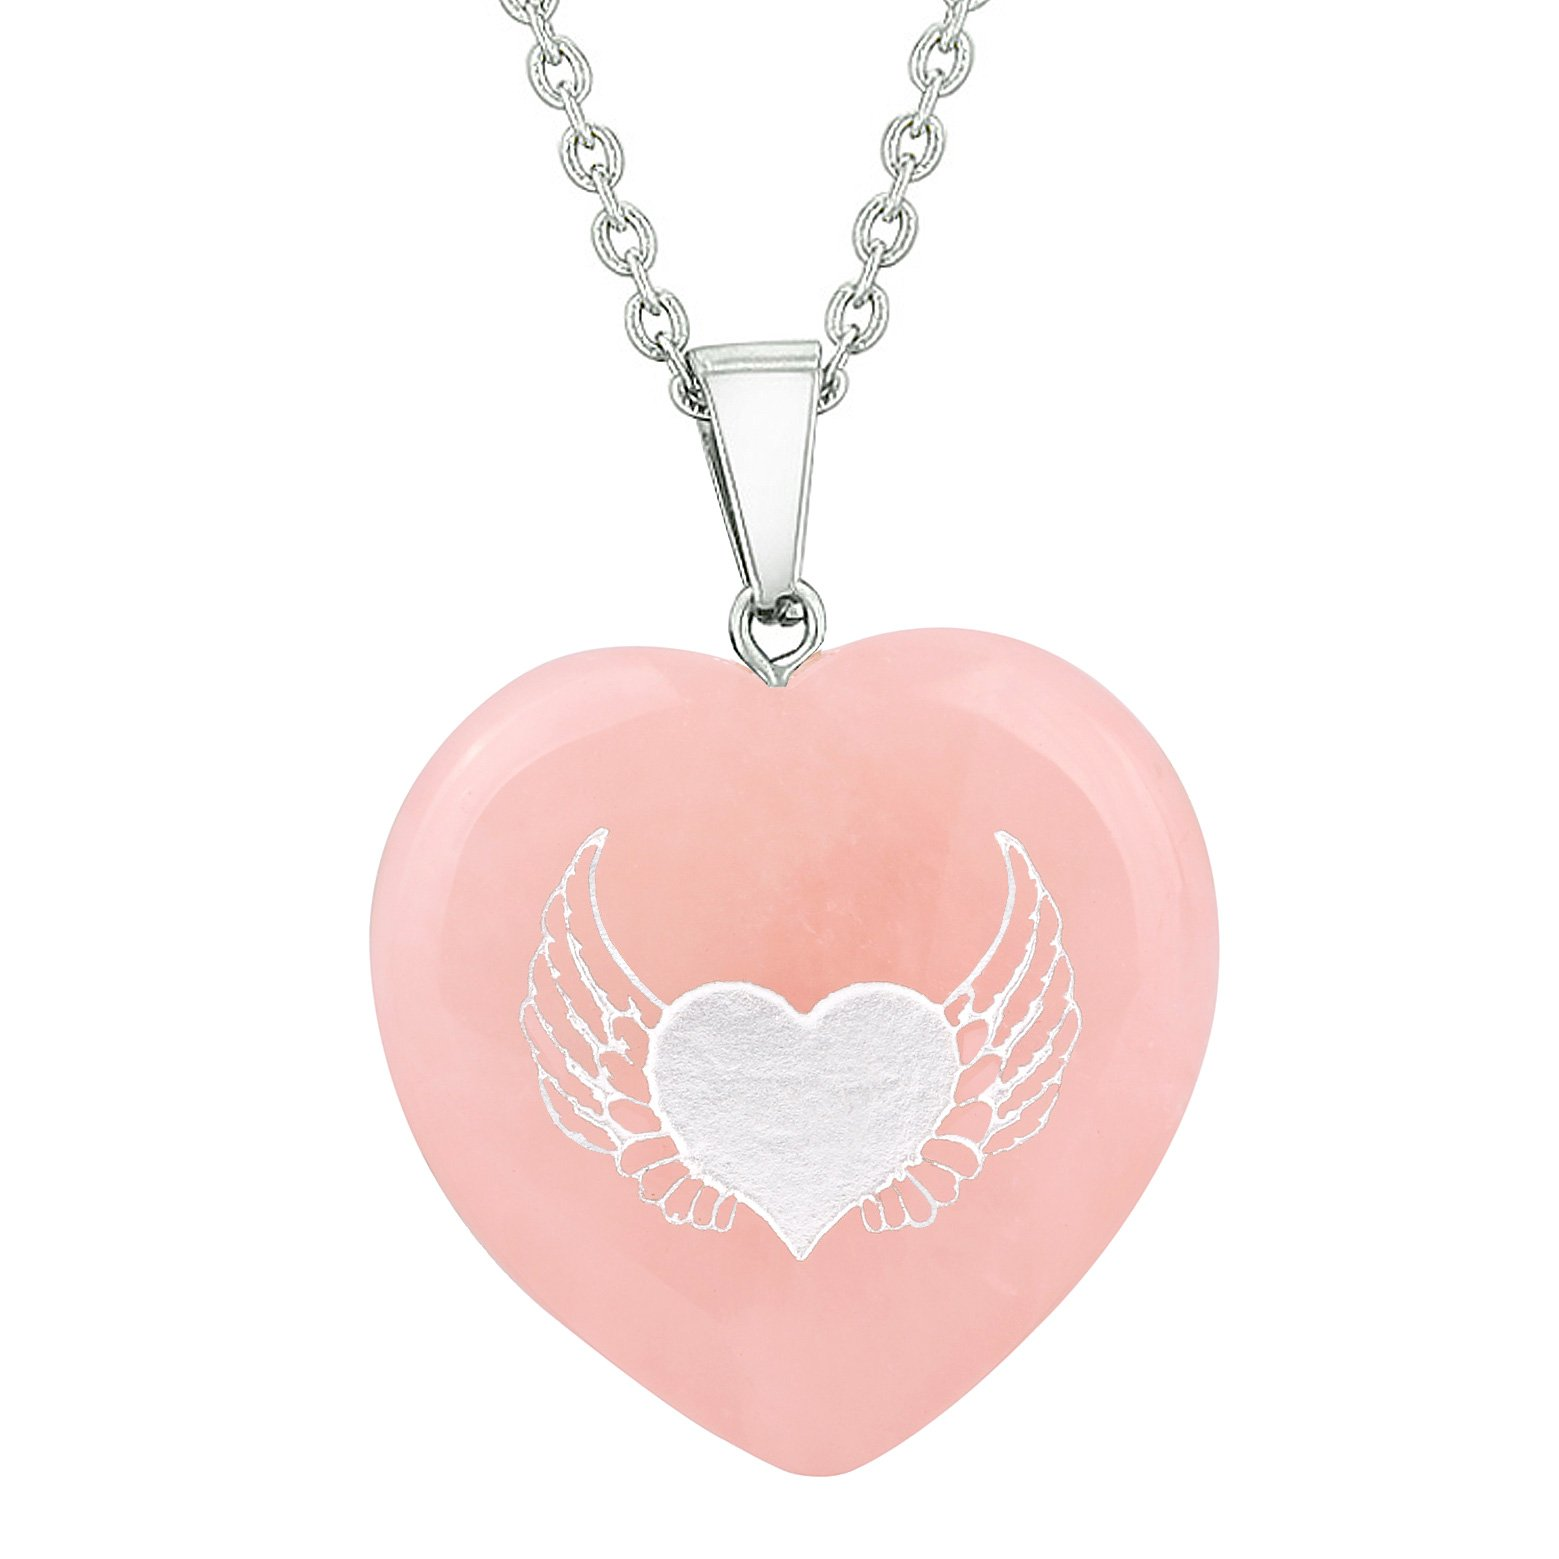 Emotional Control Rose Quartz Gemstone Crystal Heart Shaped Jewelry and Gifts